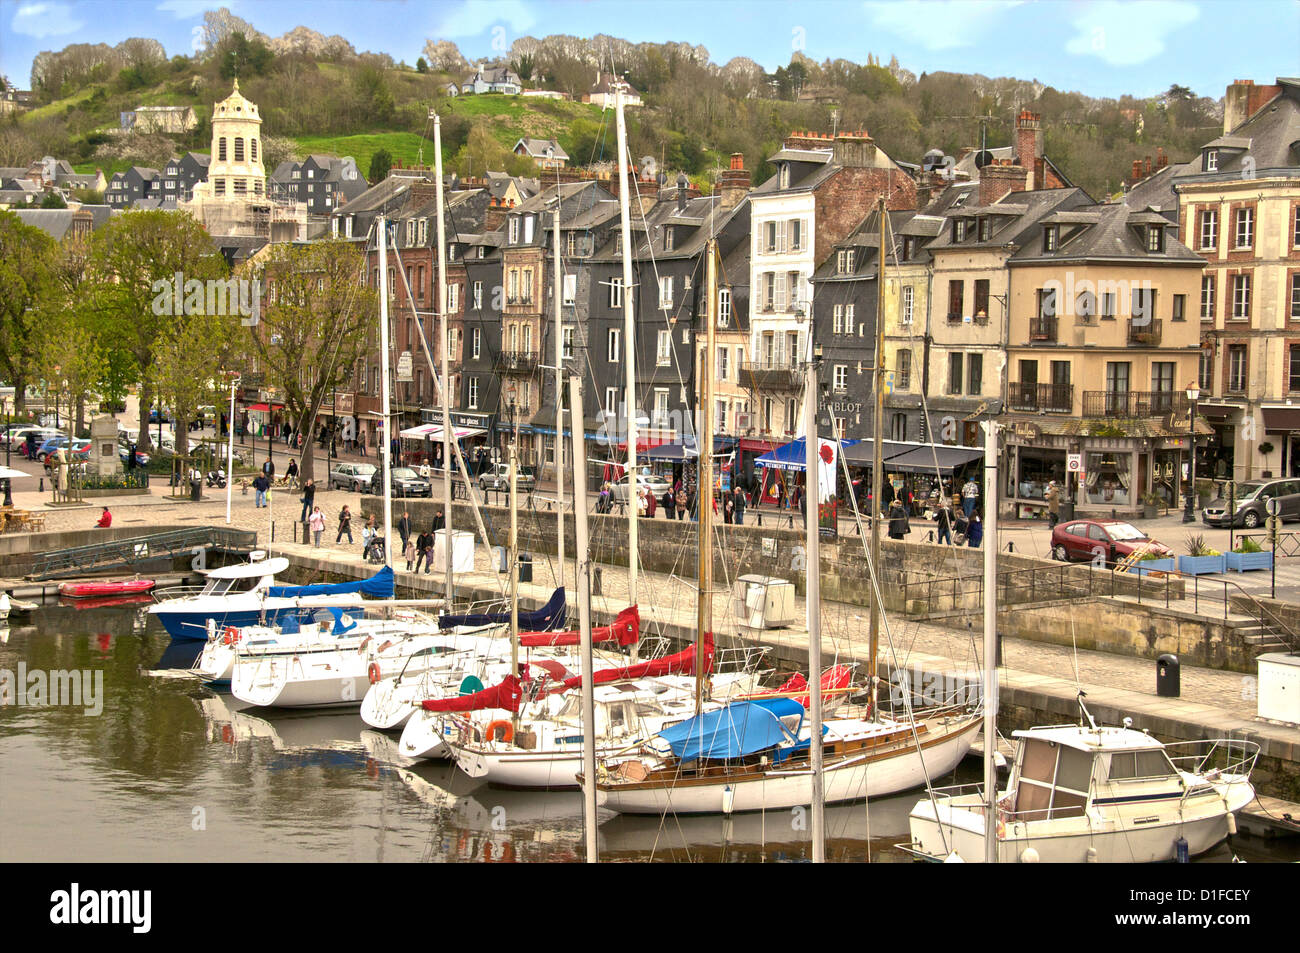 The Vieux Bassin, Old Town and boats moored along the quay, Honfleur, Calvados, Normandy, France, Europe - Stock Image